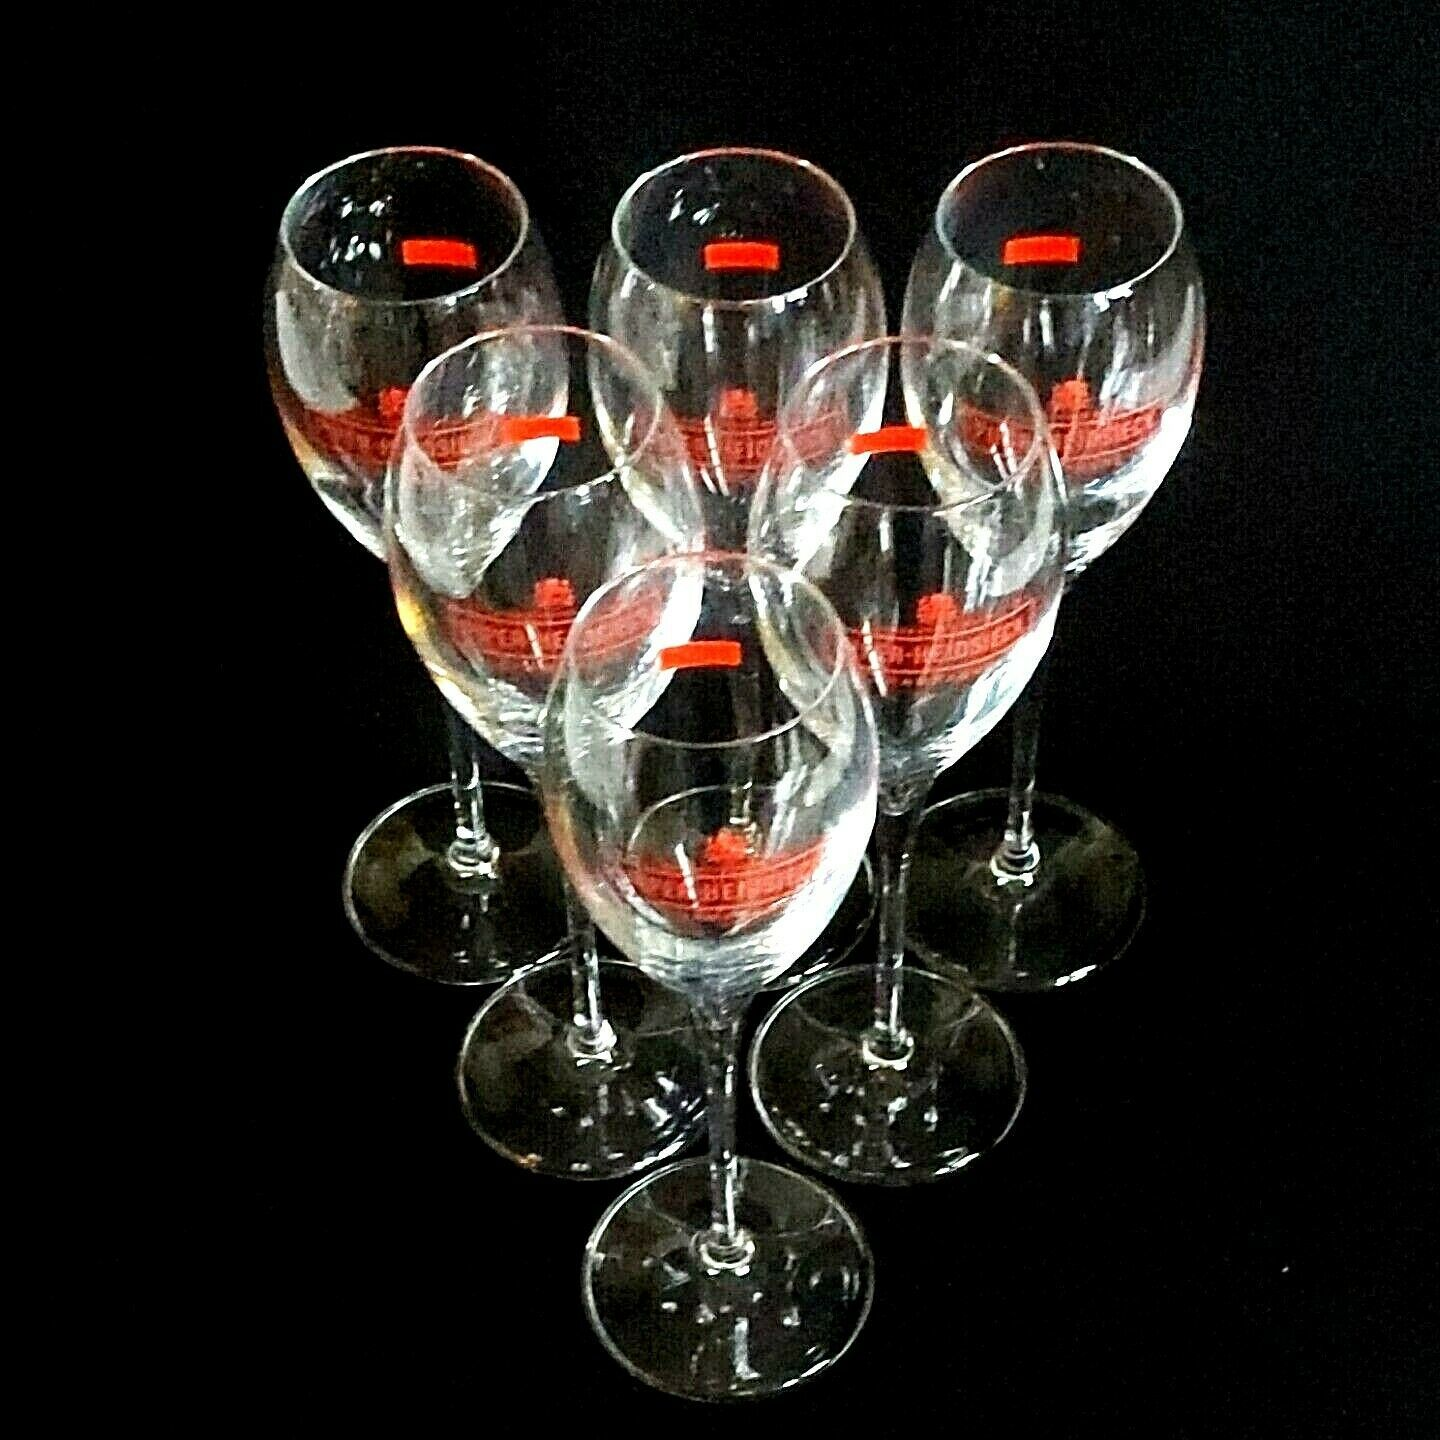 6 (Six) PIPER-HEIDSIECK RED LOGO Maison Fonde'e  1785 Crystal Champagne Flutes image 2